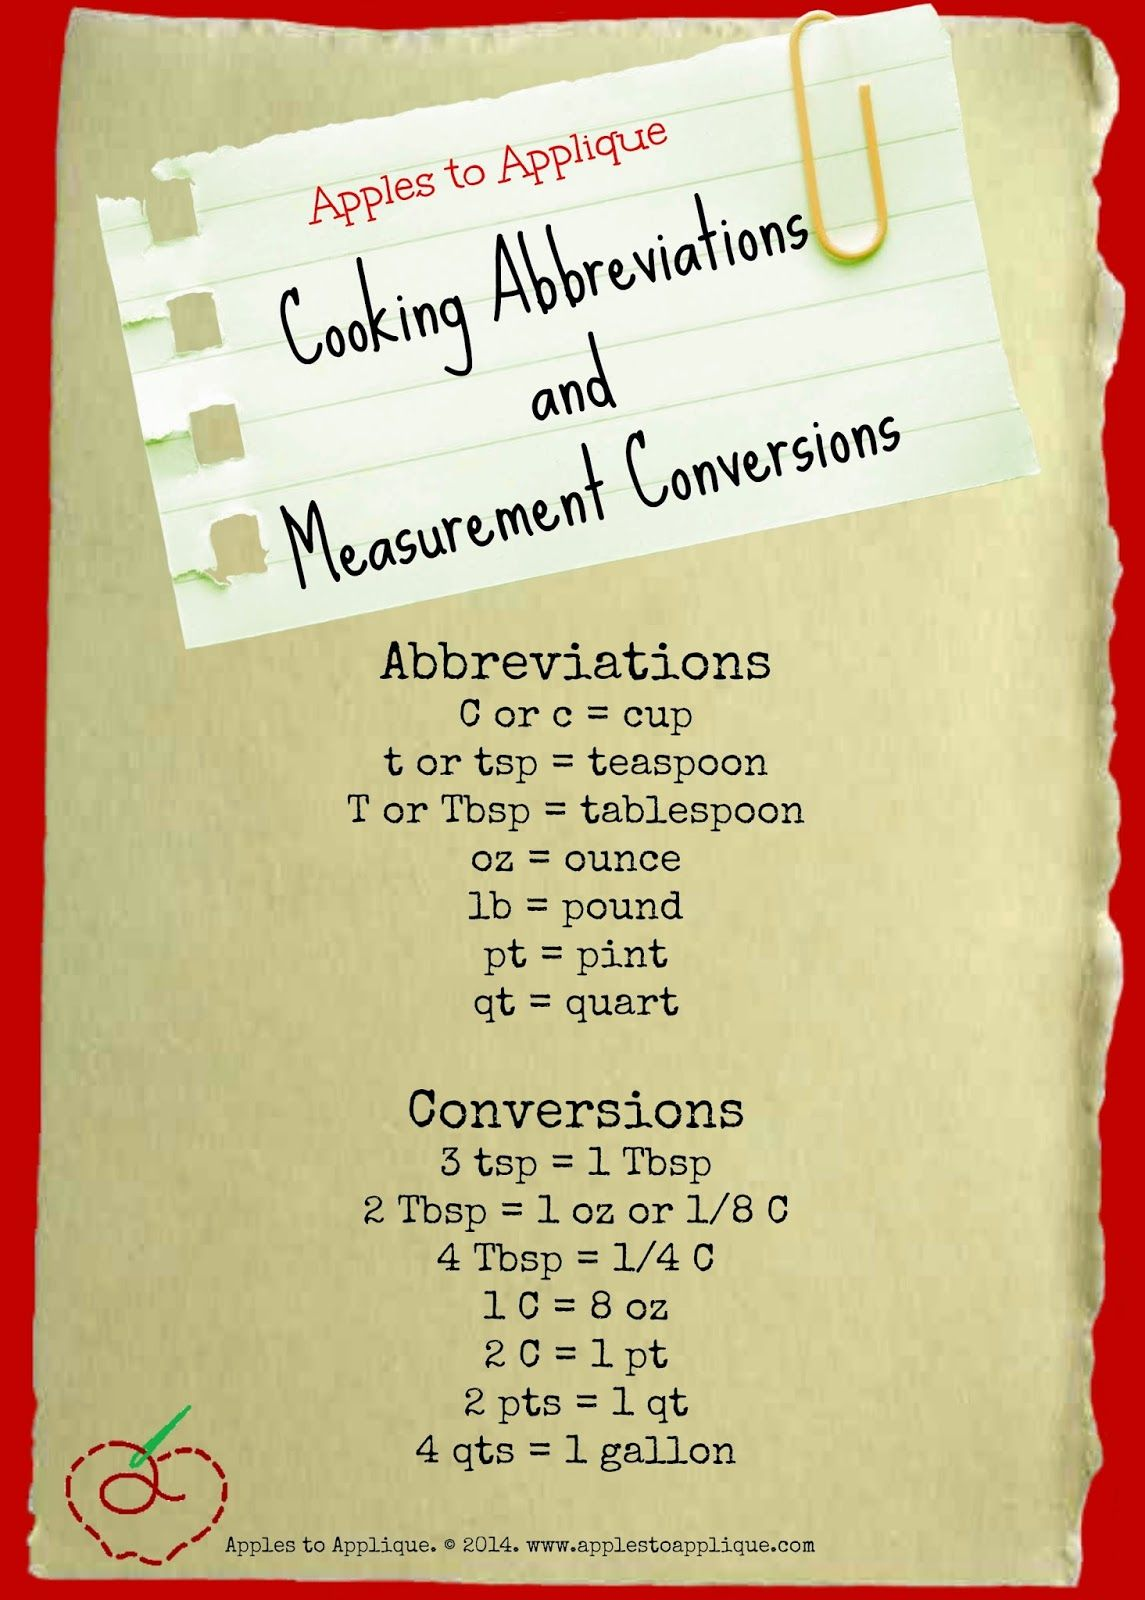 Cooking Abbreviations And Measurement Conversions